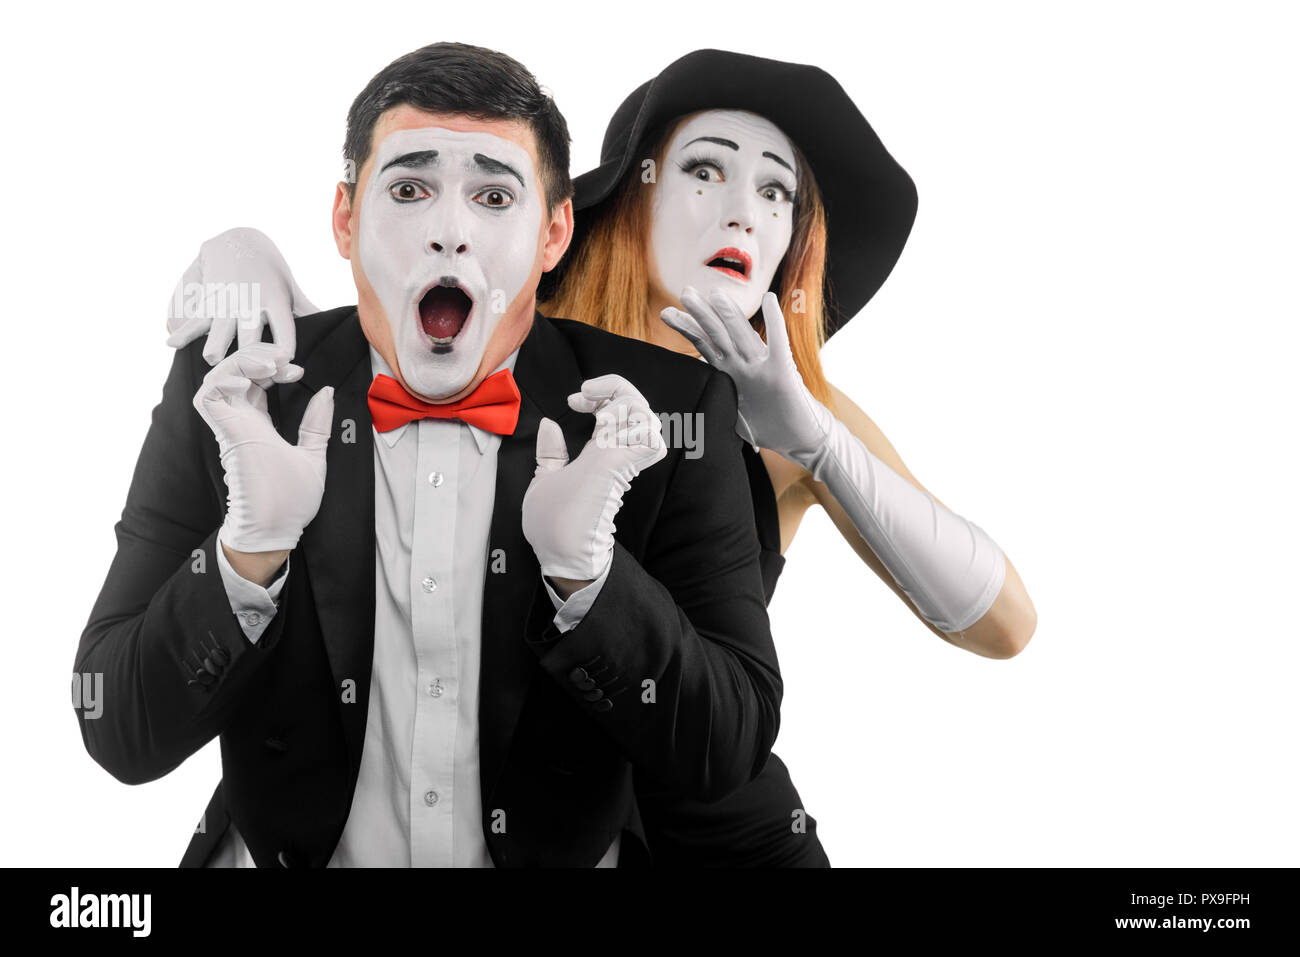 Two frightened mime actors - Stock Image